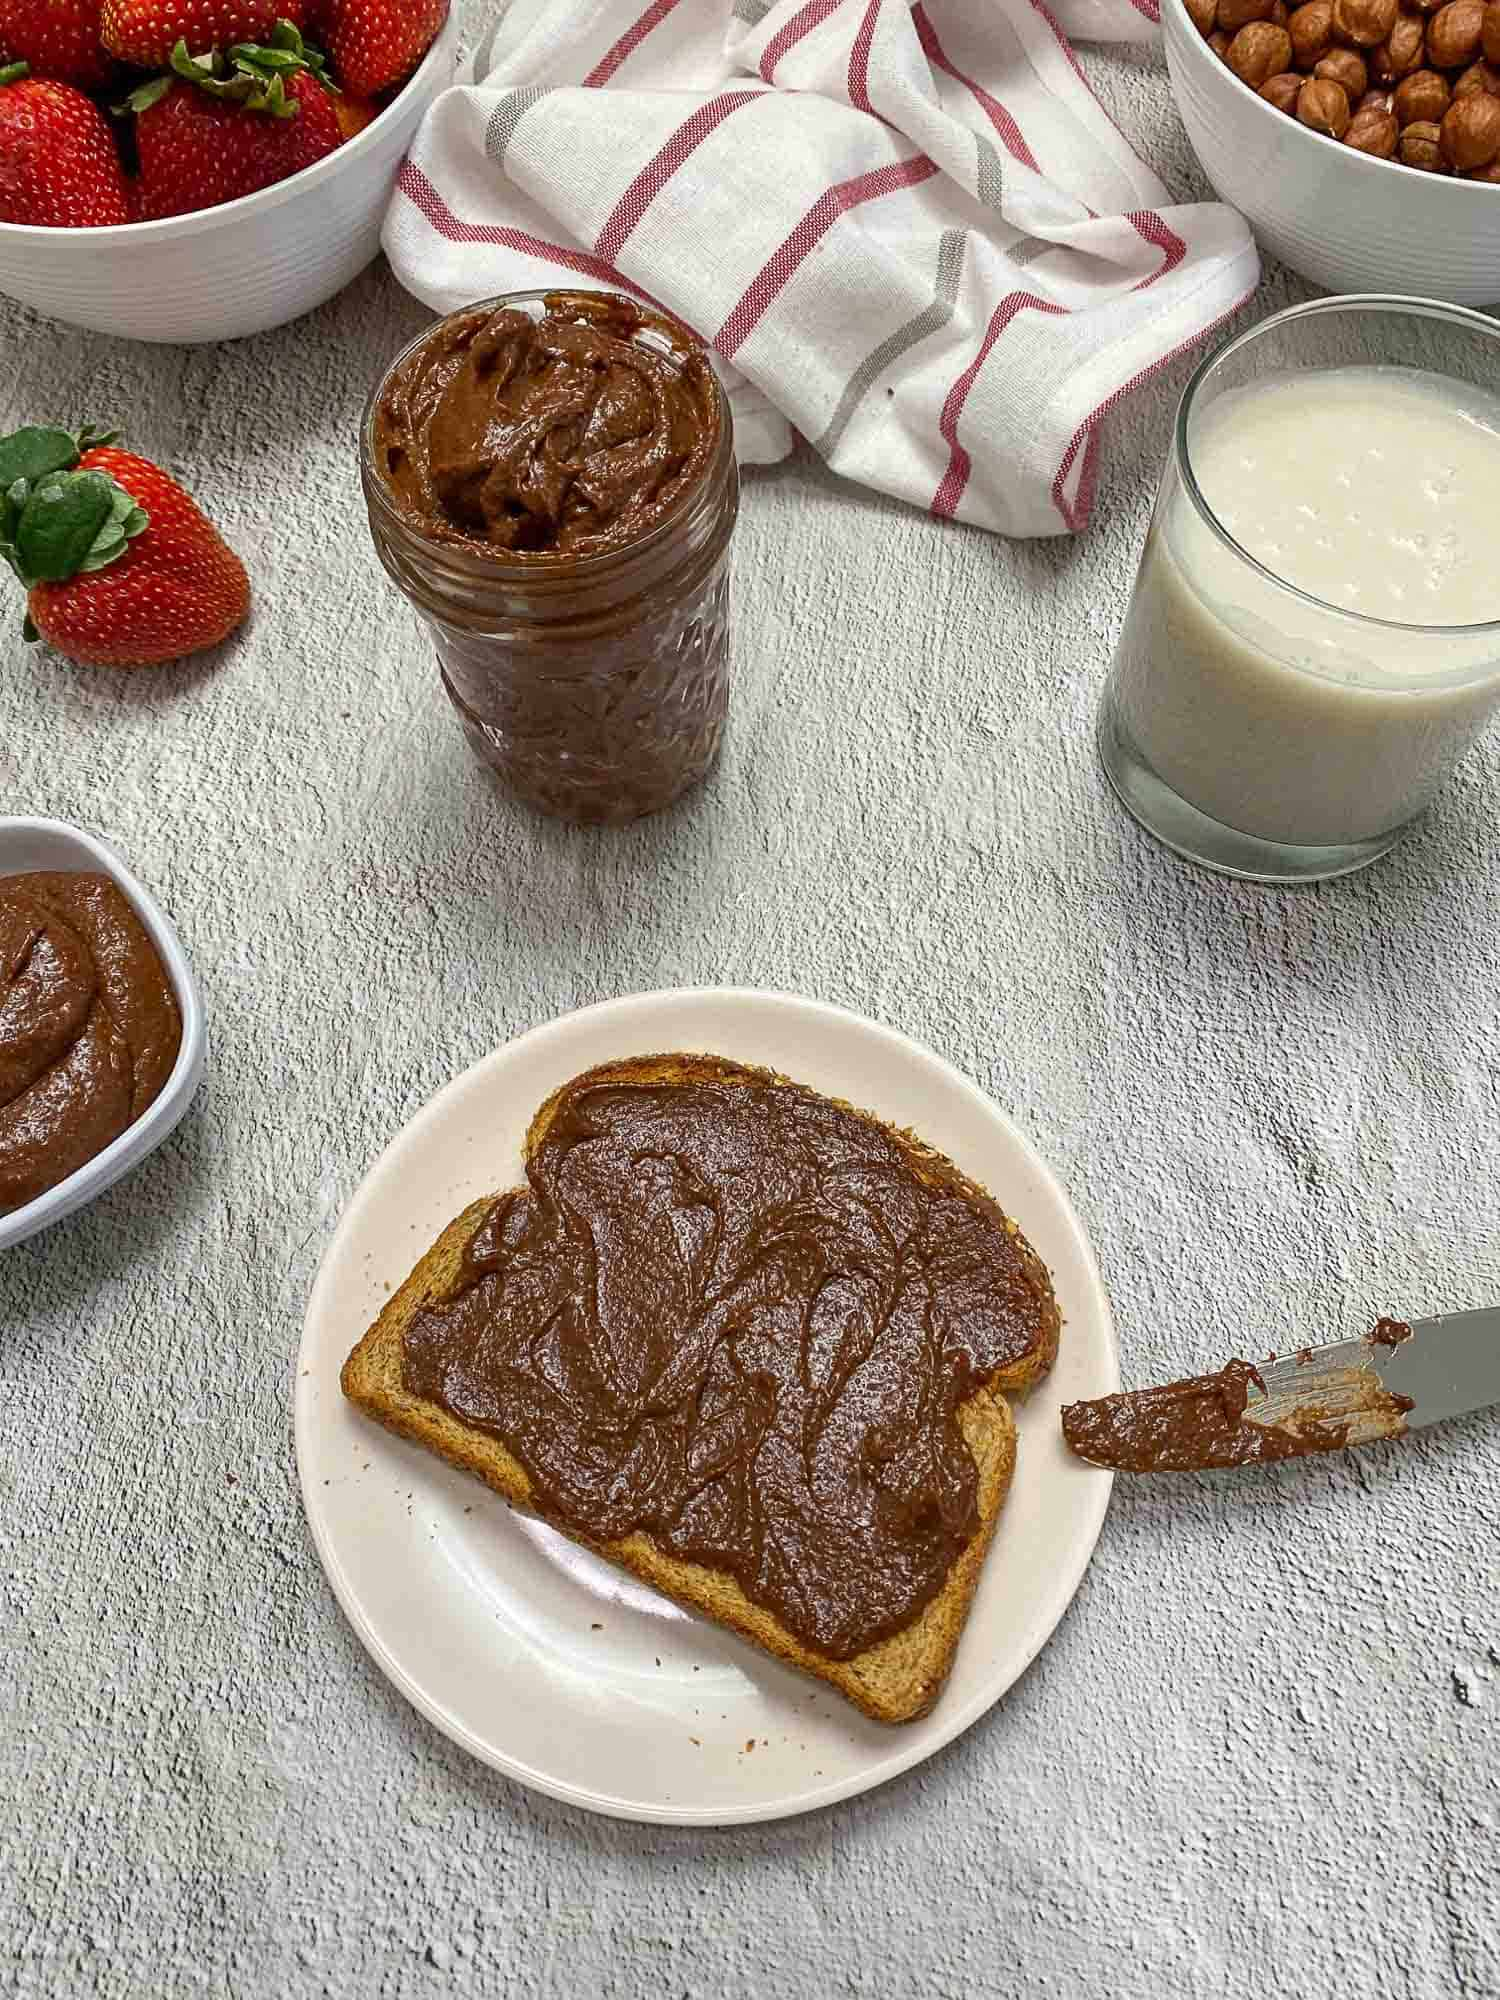 nutella spread on toast with glass of milk in background